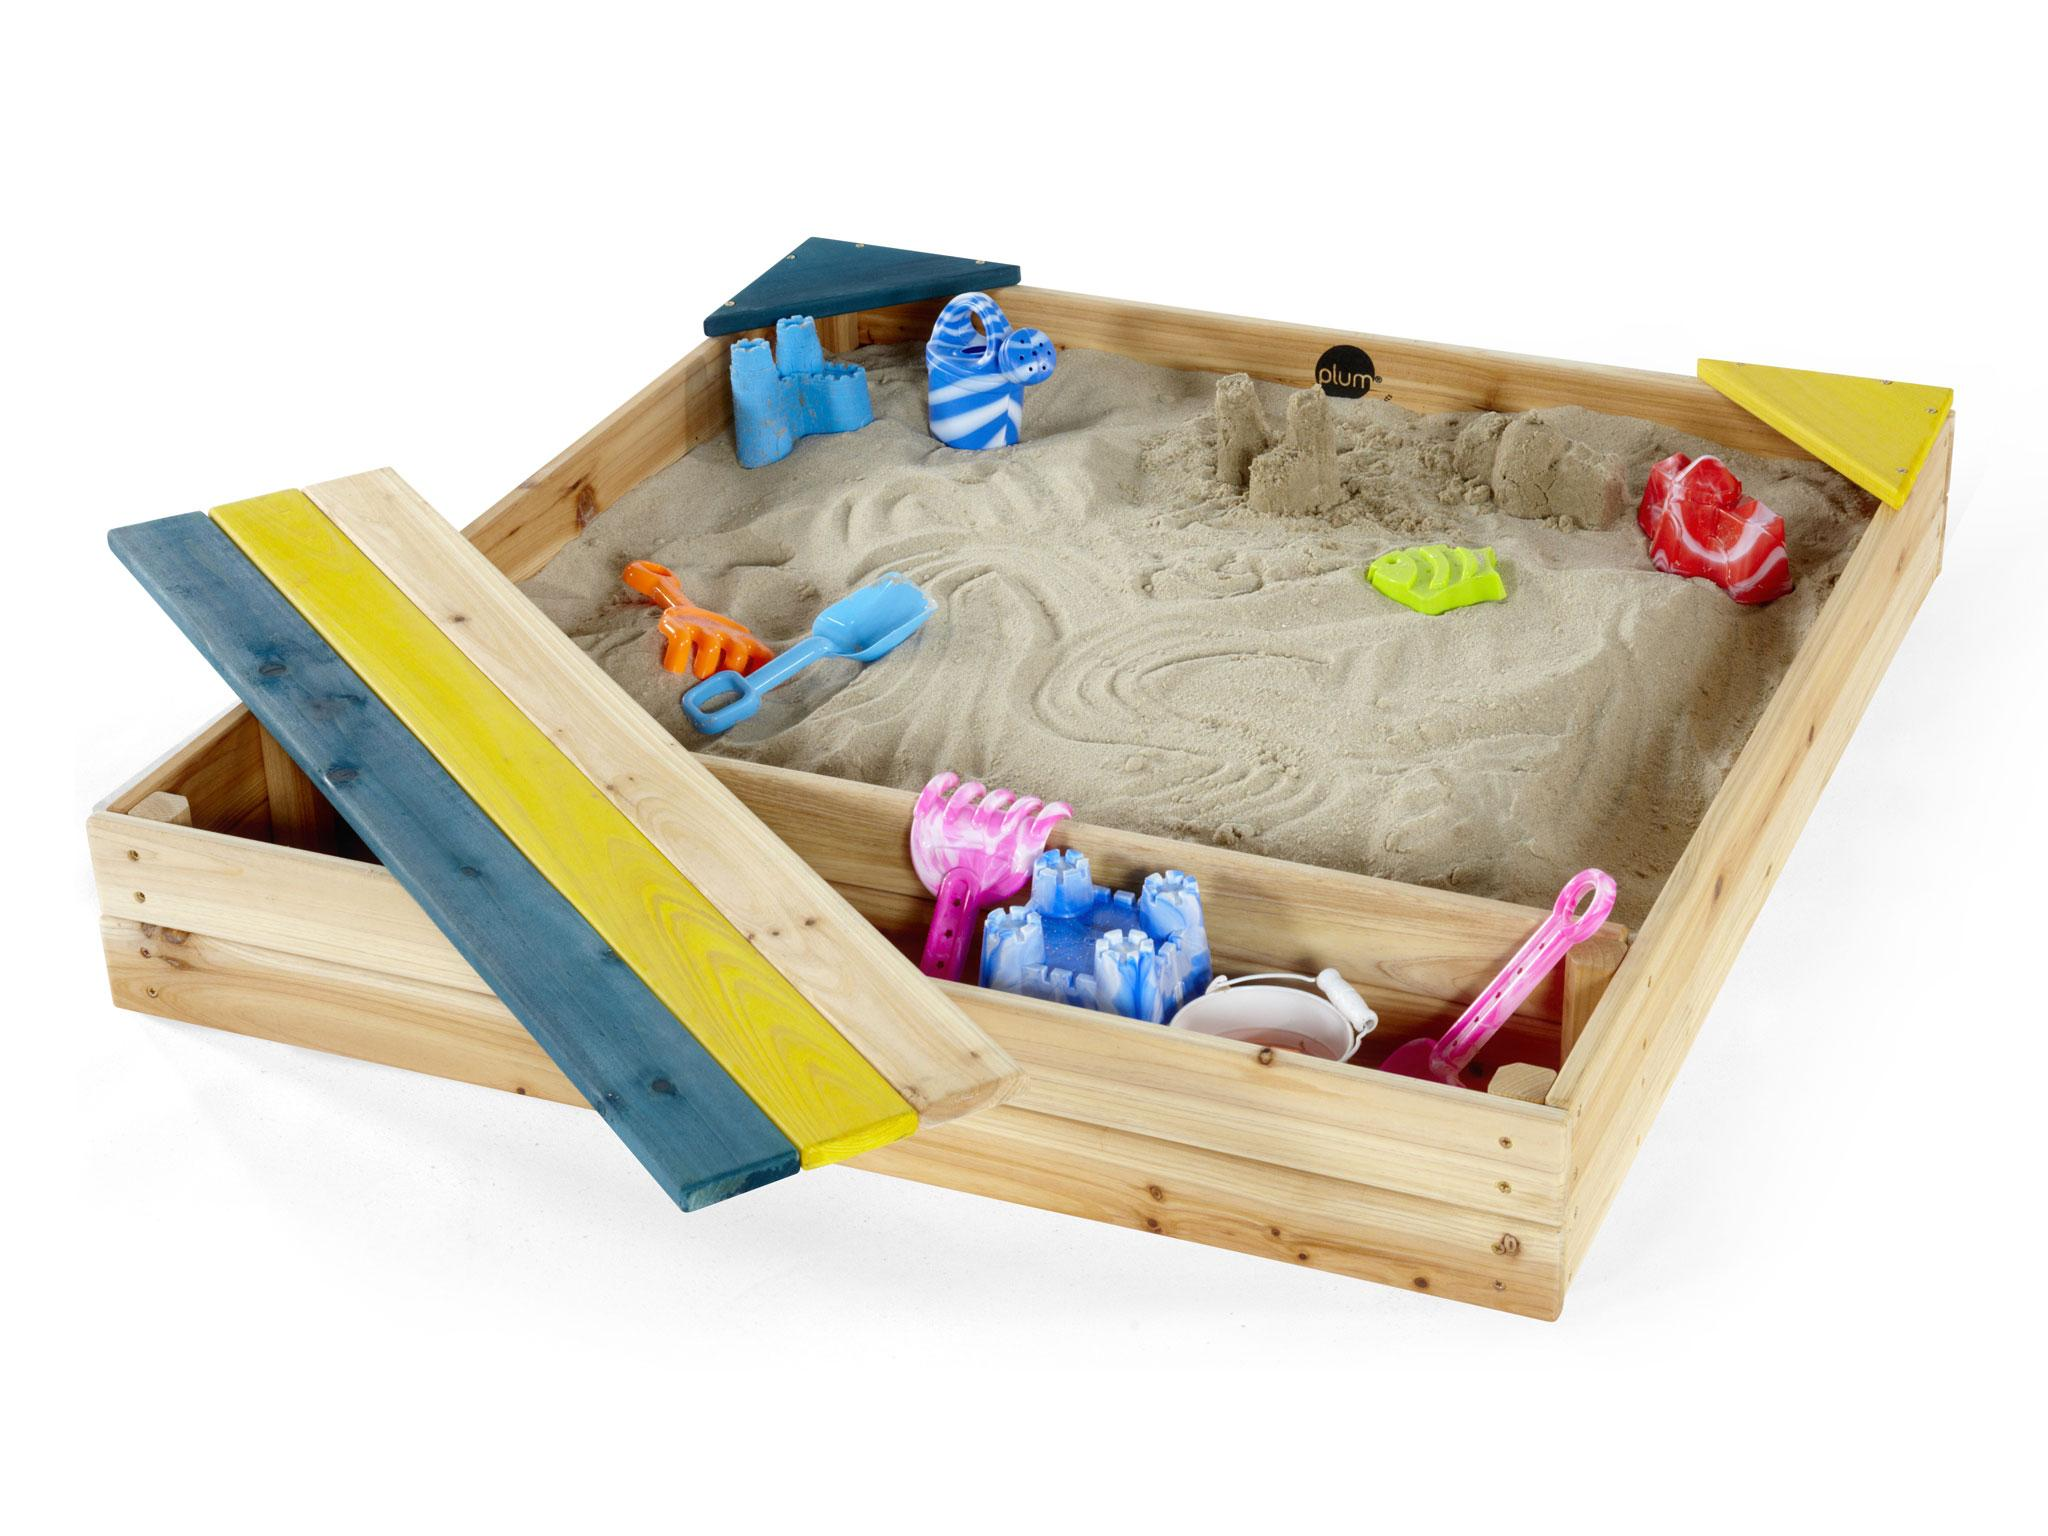 best sandpit: choose from play spaces with buckets, benches